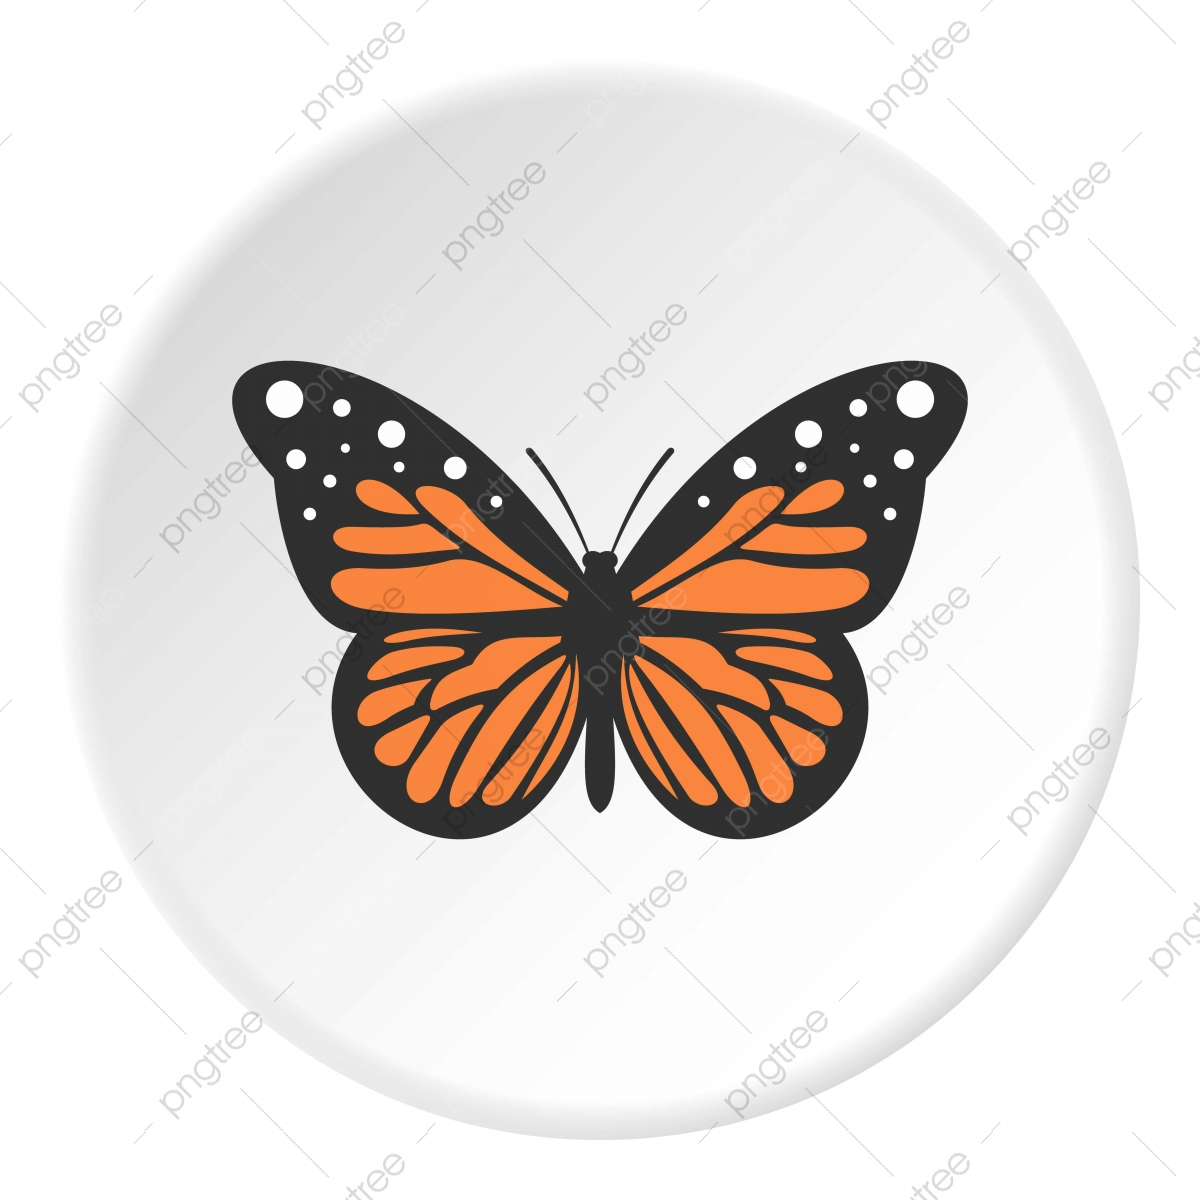 big butterfly icon circle circle icons butterfly icons big png and vector with transparent background for free download https pngtree com freepng big butterfly icon circle 5282064 html